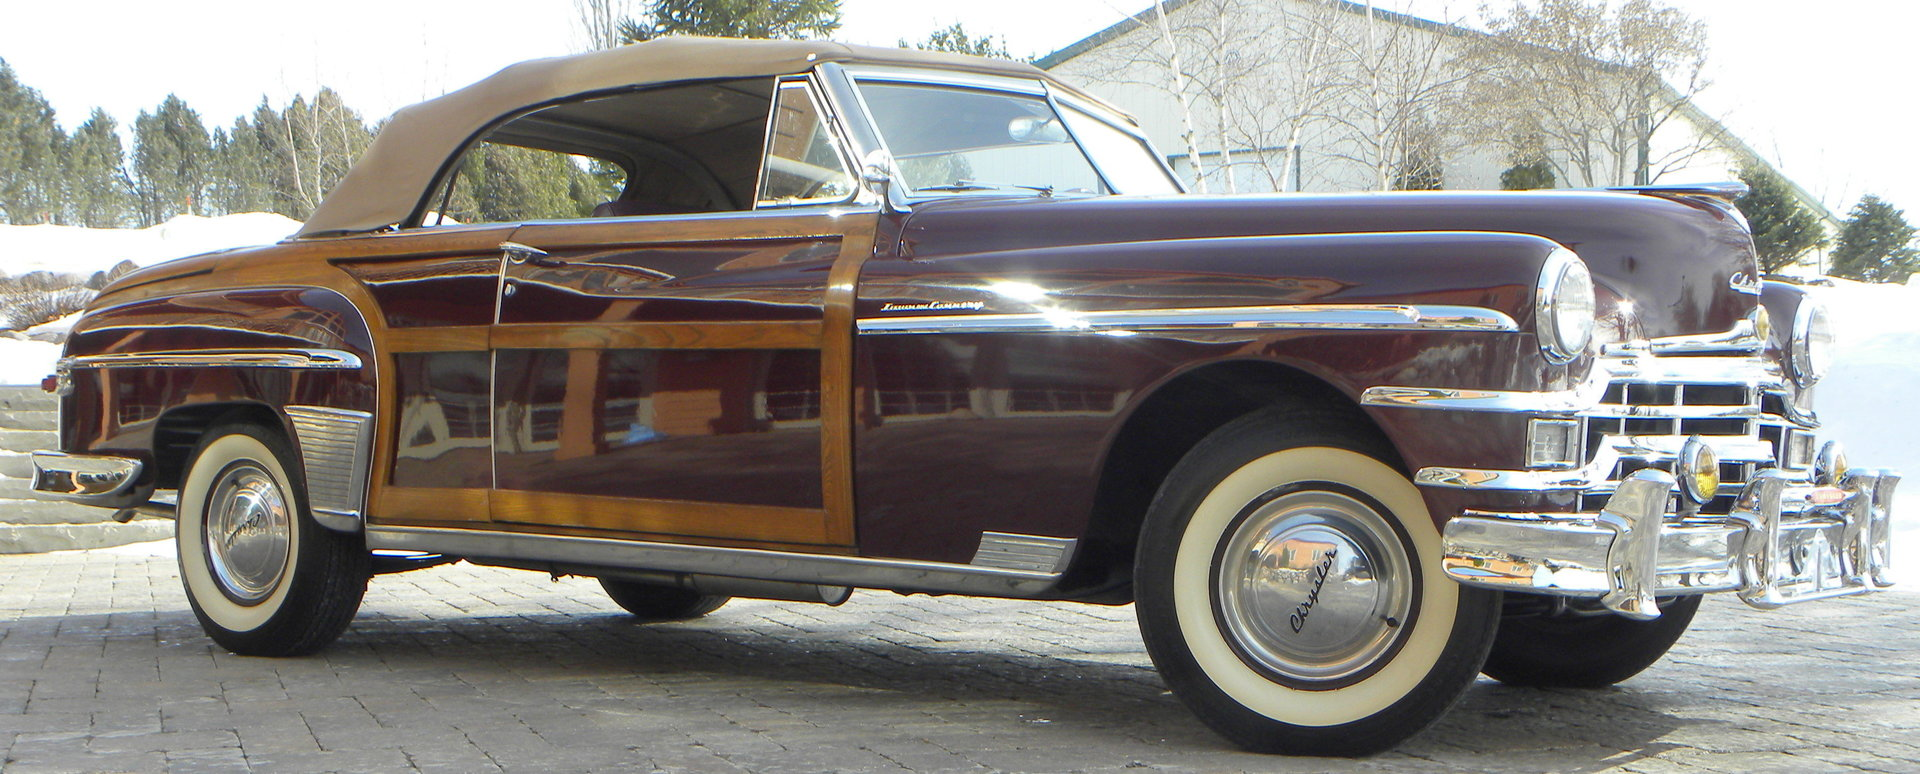 1949 Chrysler Town And Country For Sale 75533 Mcg